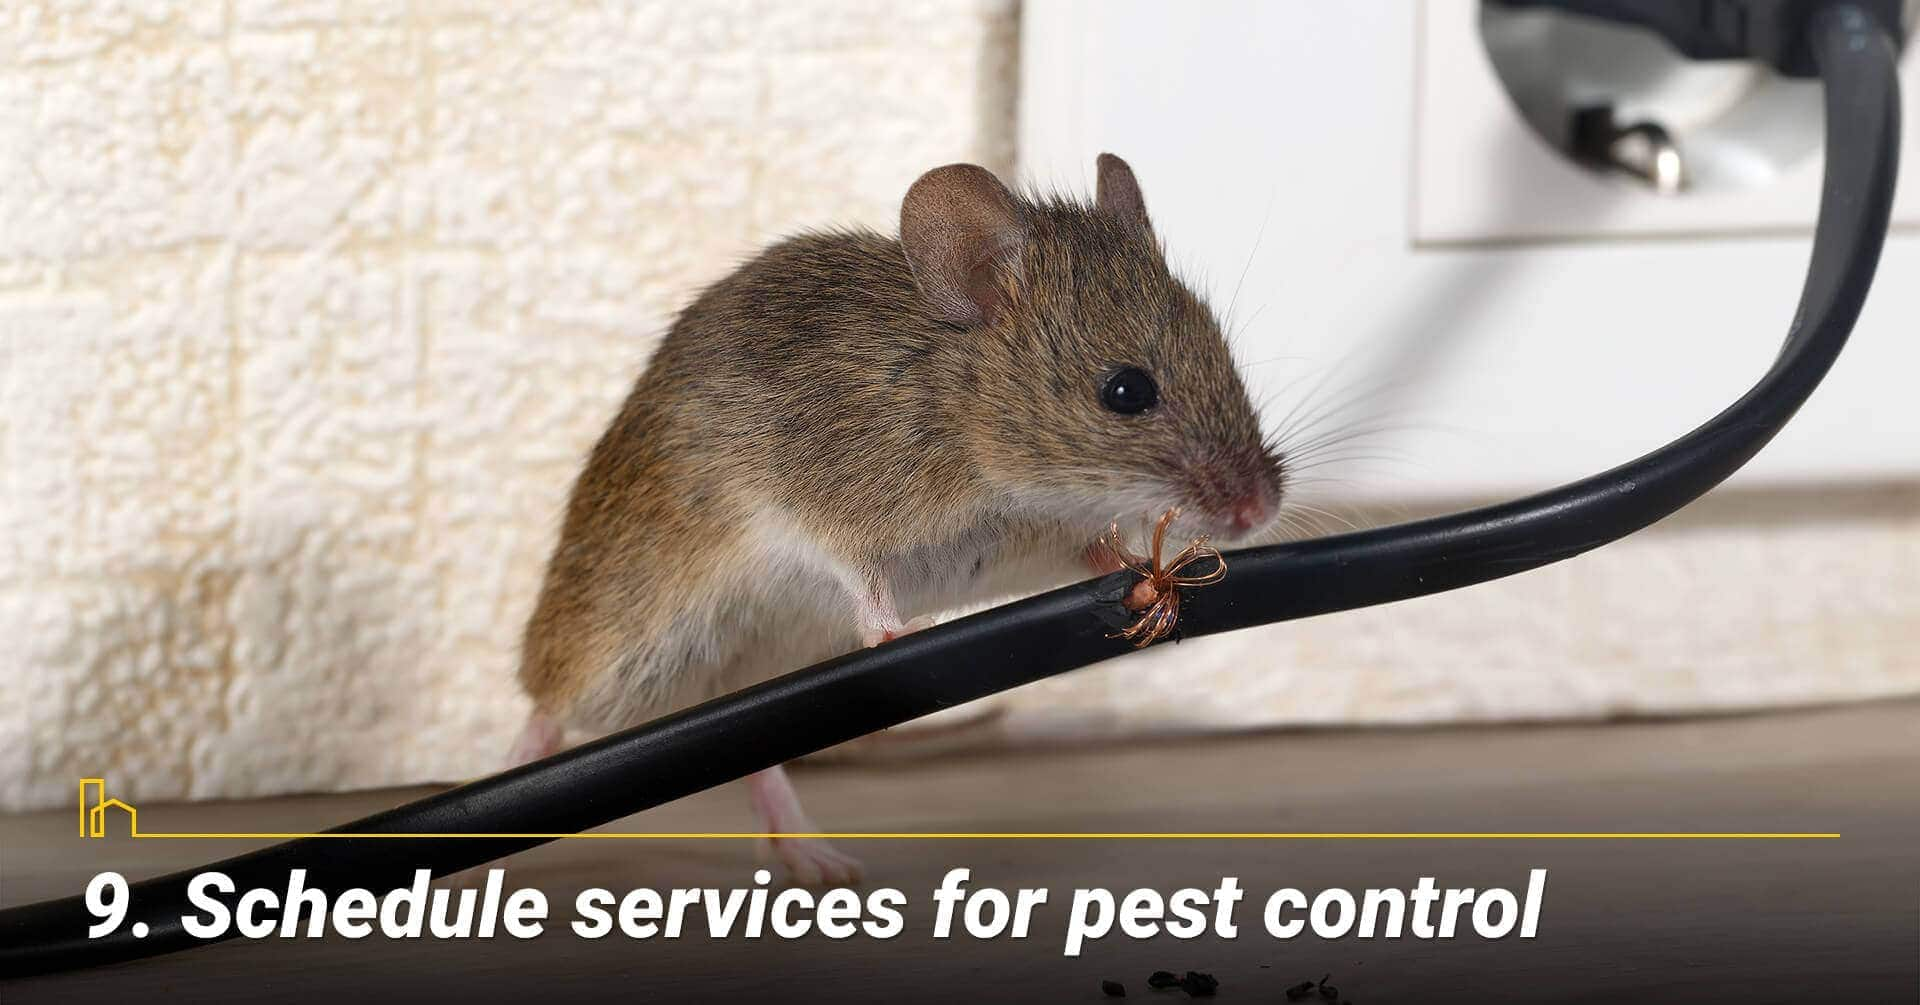 Schedule services for pest control, keep the pest away